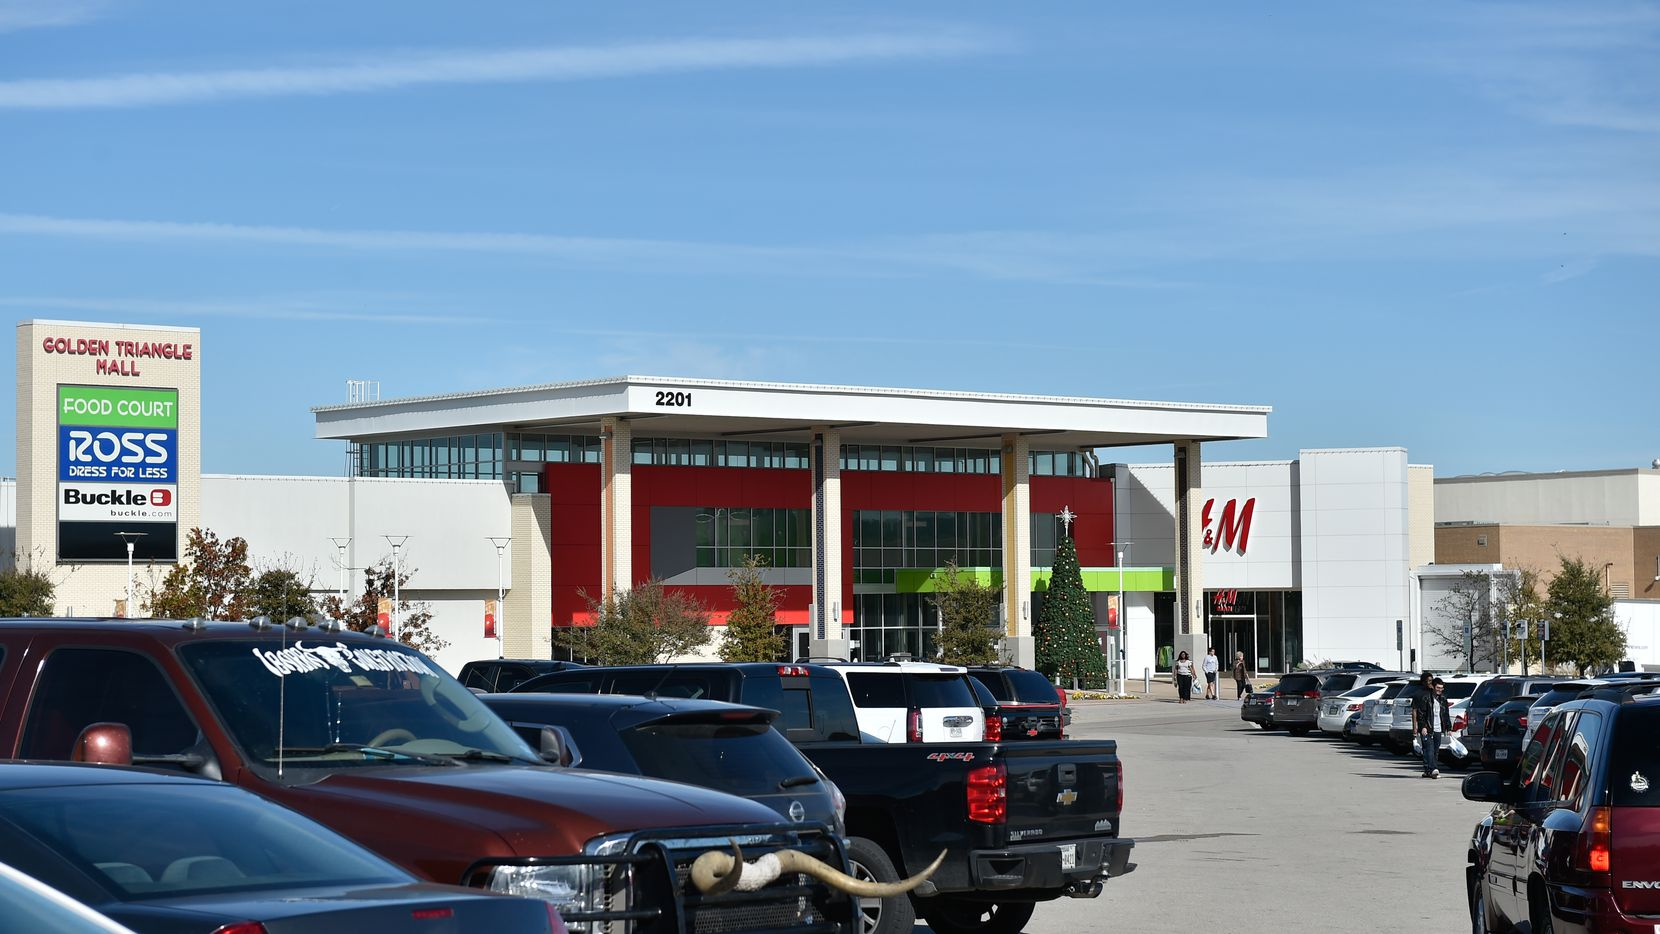 Retail property vacancies are down and shopping center leasing is up in North Texas.